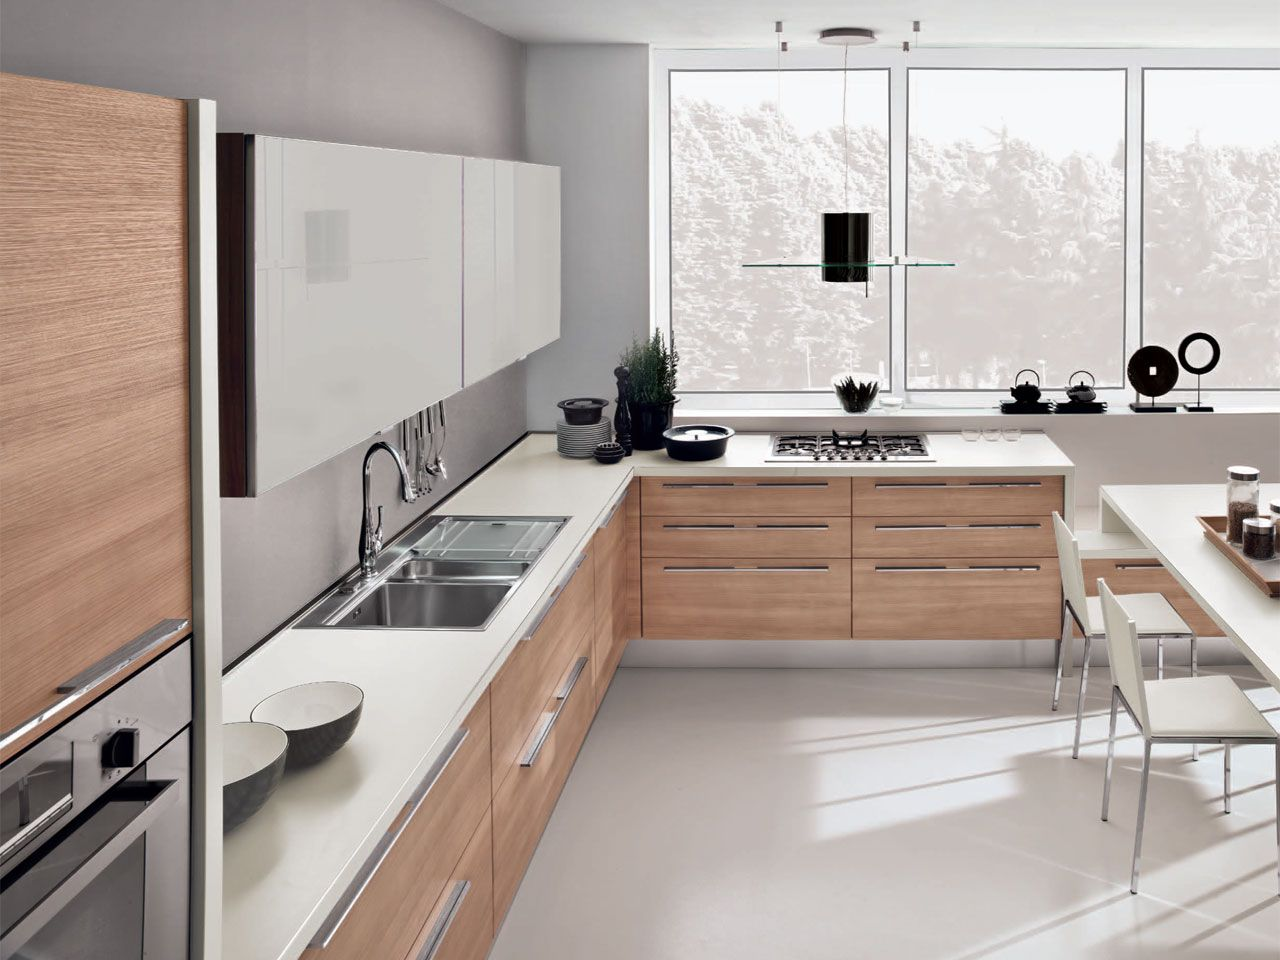 Noemi - Kitchens - Cucine Lube | Kitchen Designs | Pinterest ...